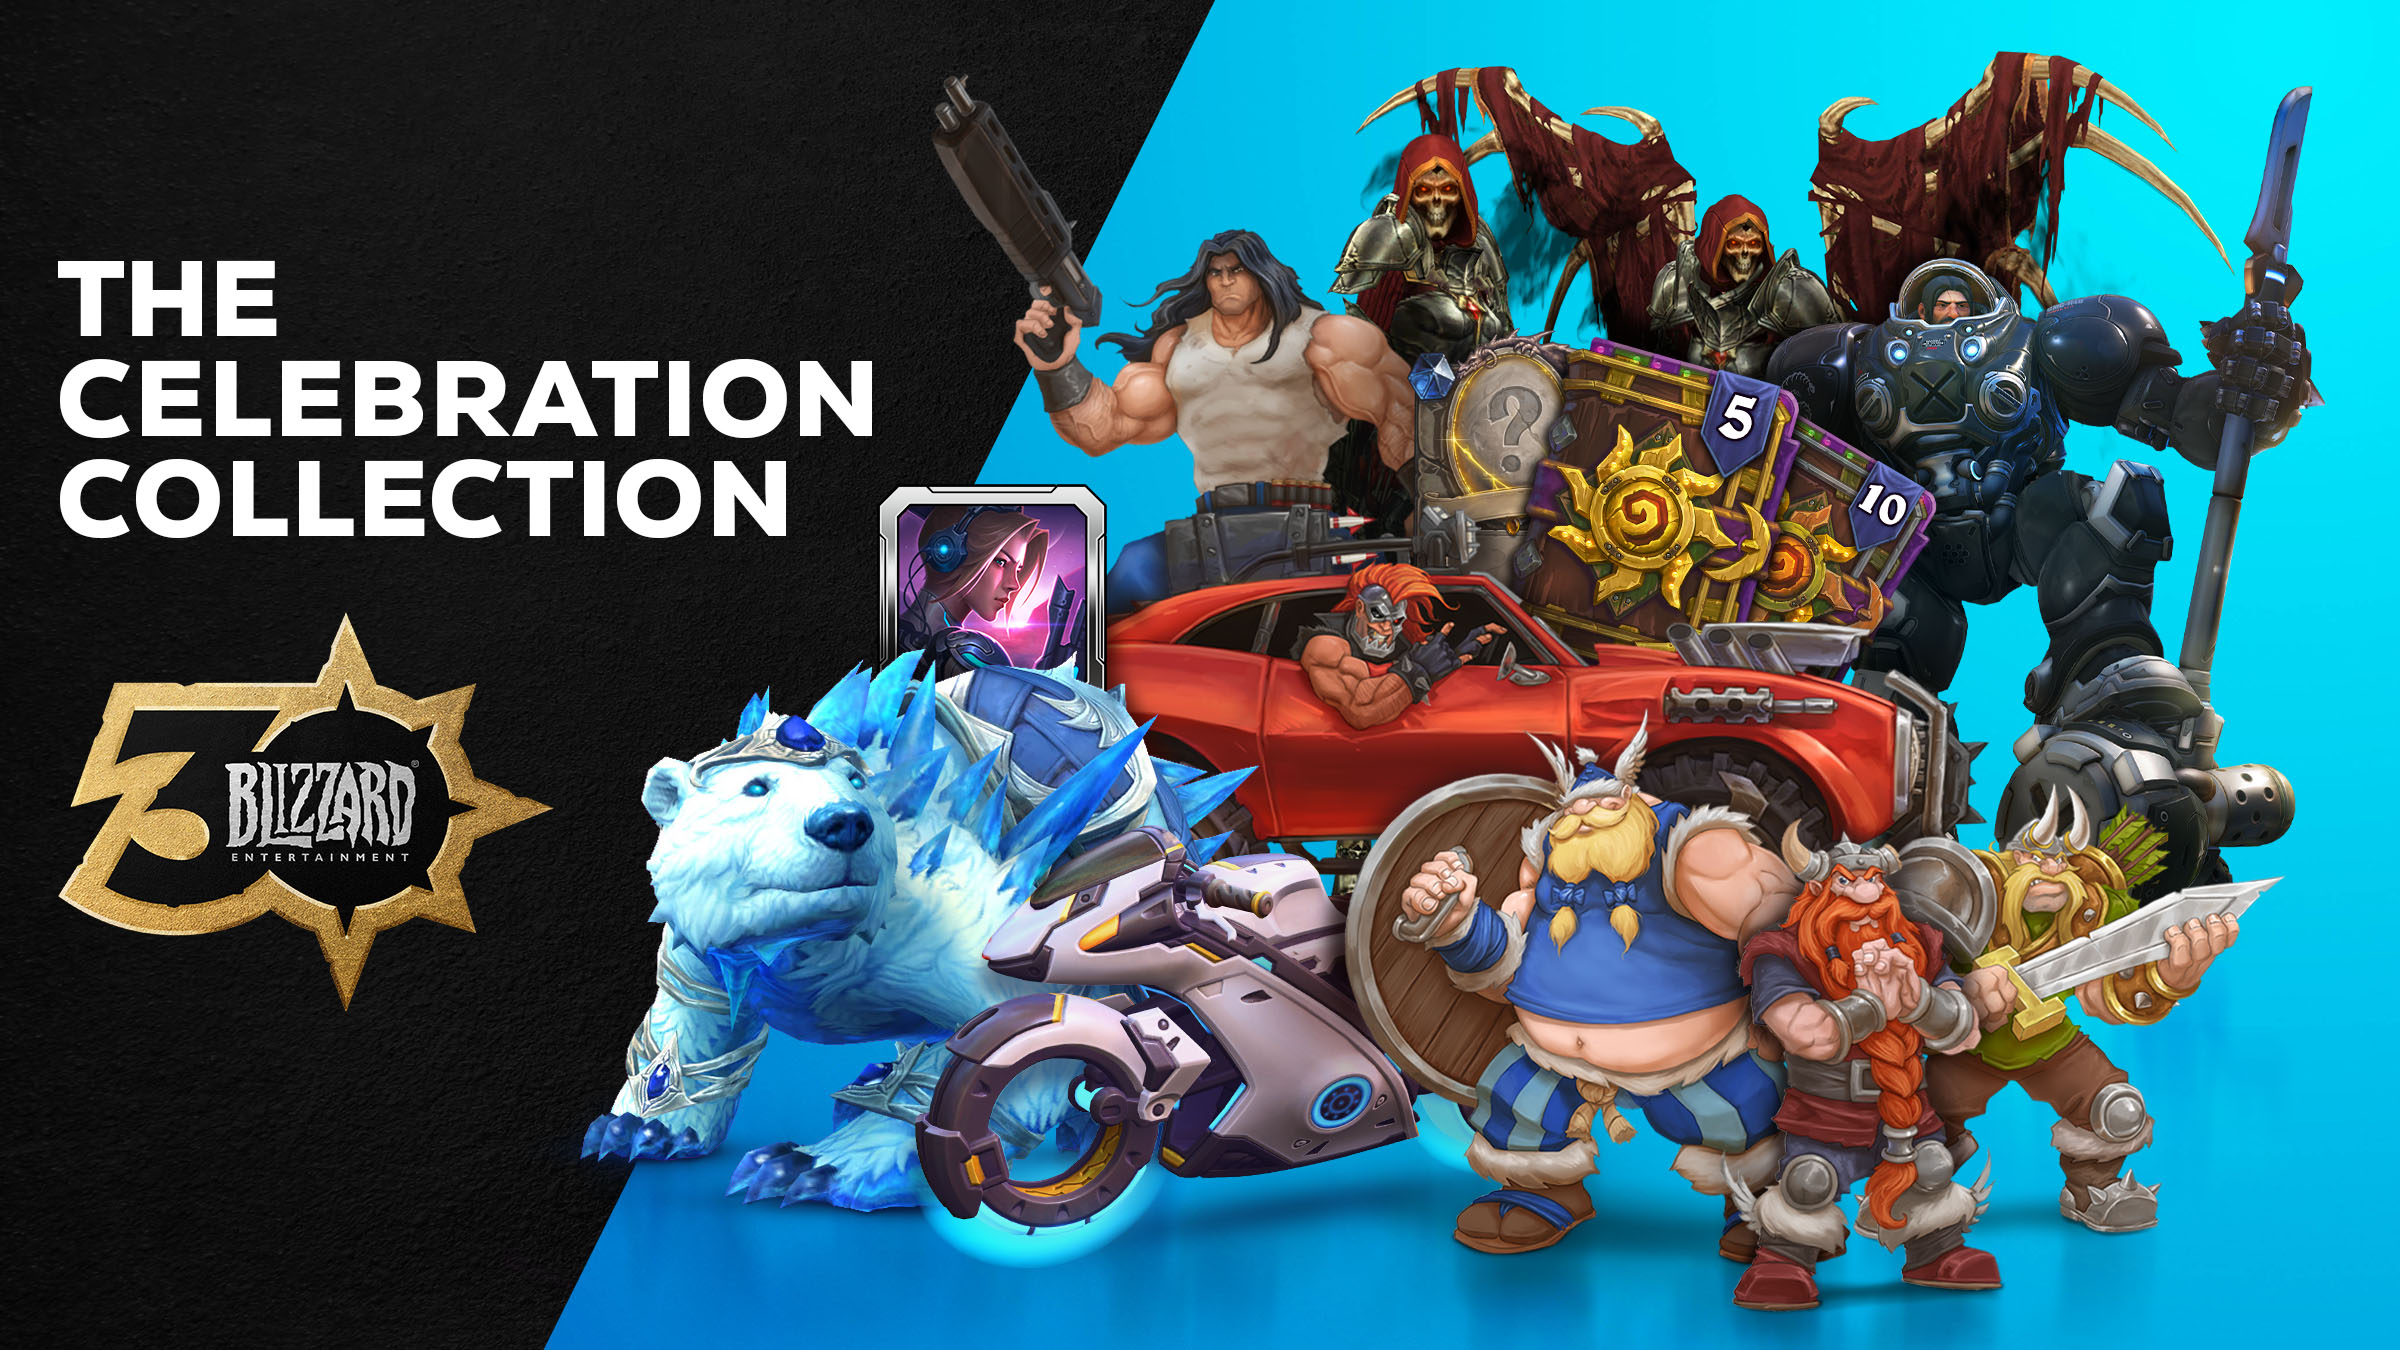 Commemorate 30 Years of Blizzard® Gaming With the Celebration Collection